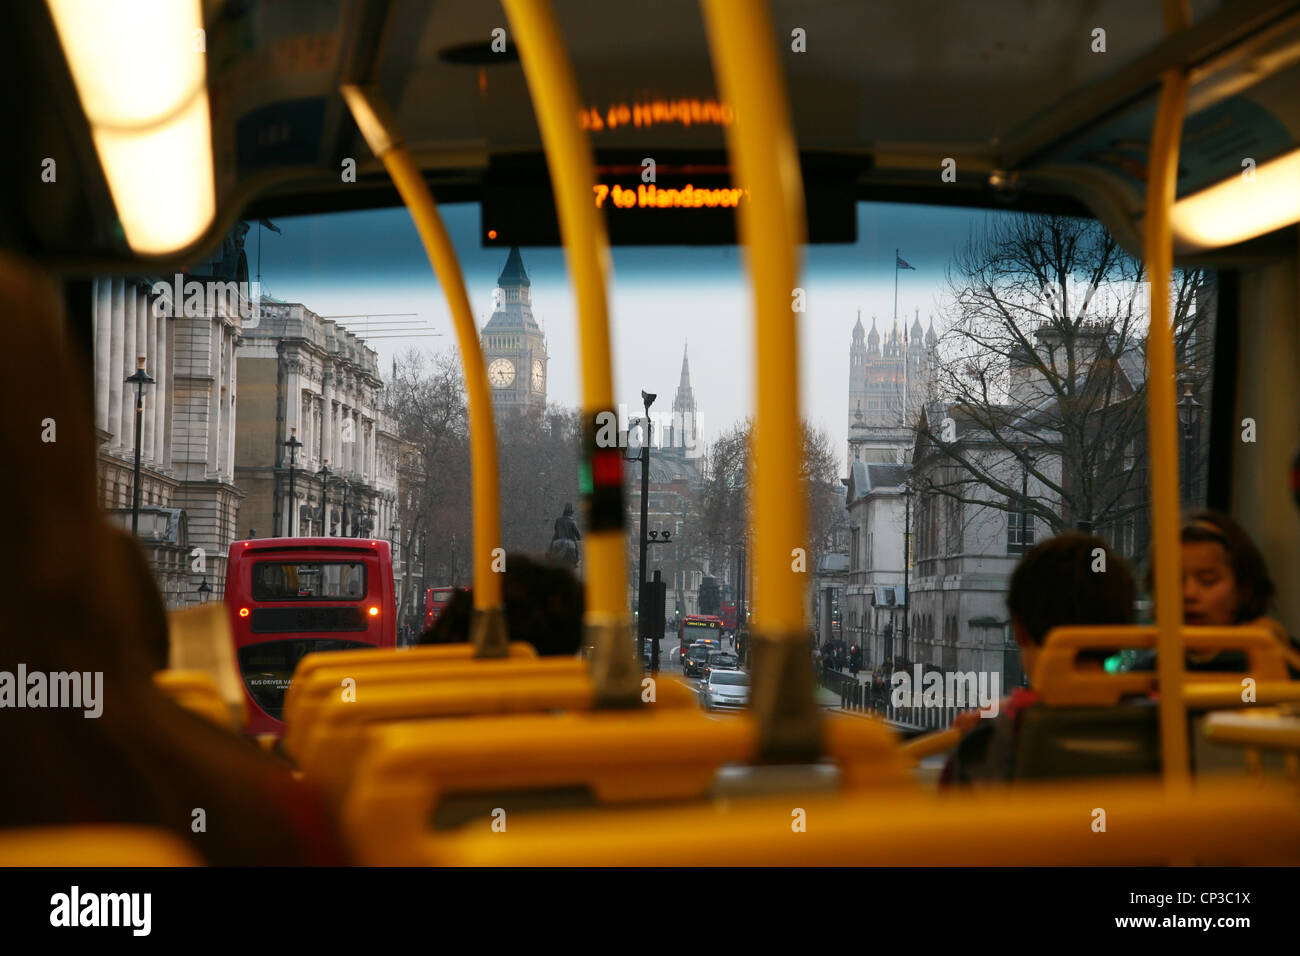 Inside view of London Double Decker Bus, passengers are ...